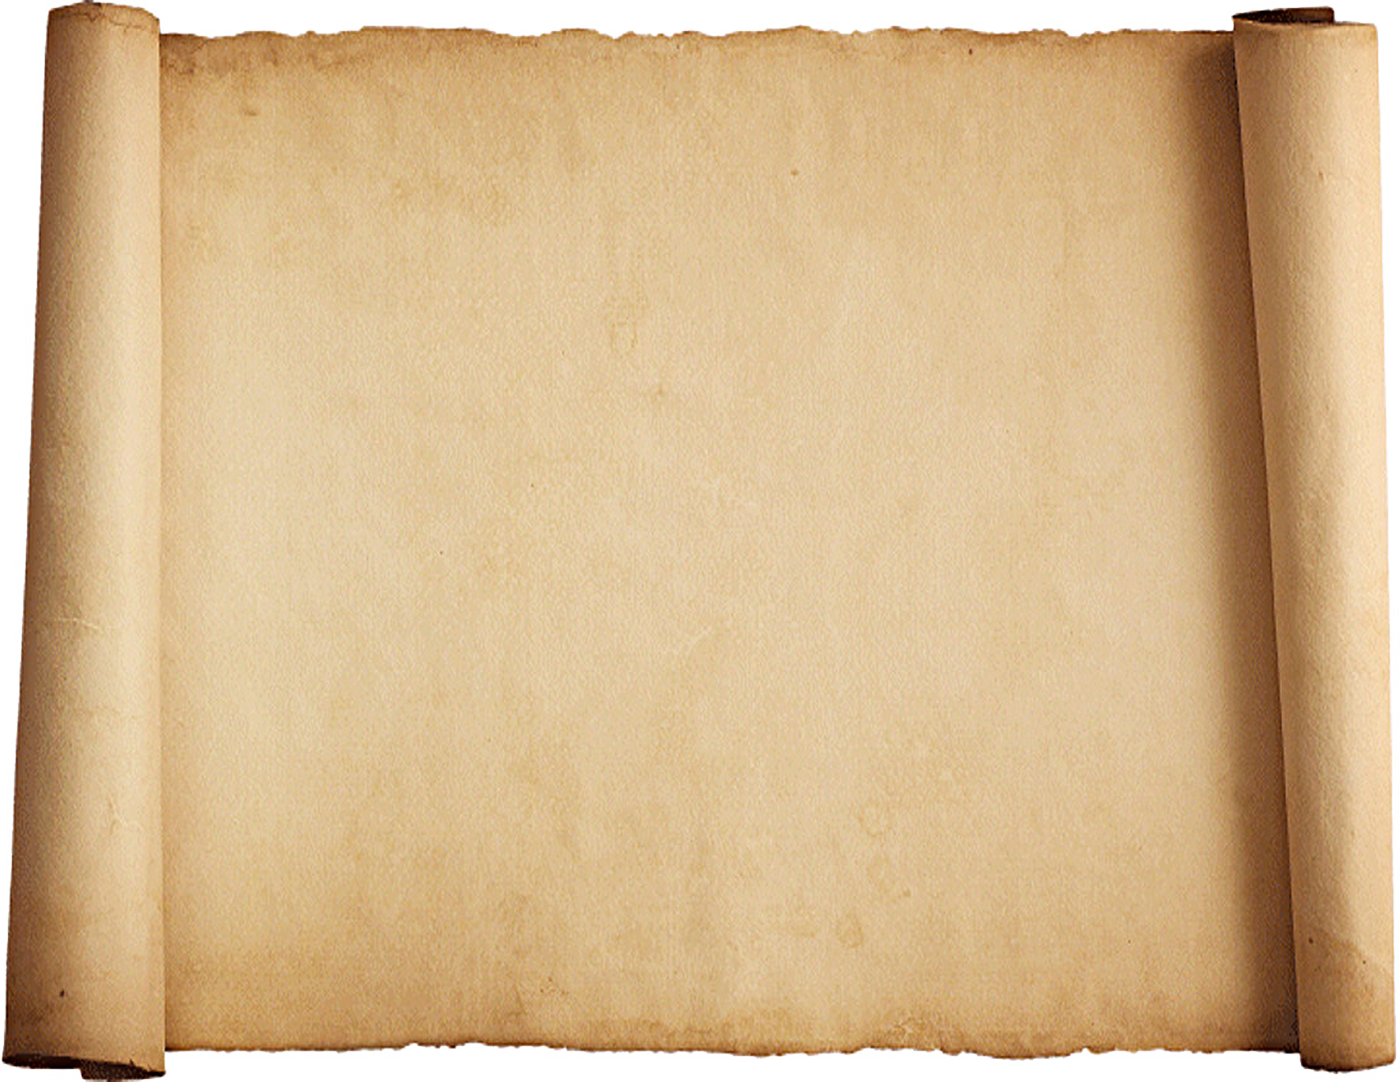 parchment_scroll_background.png | Българска история